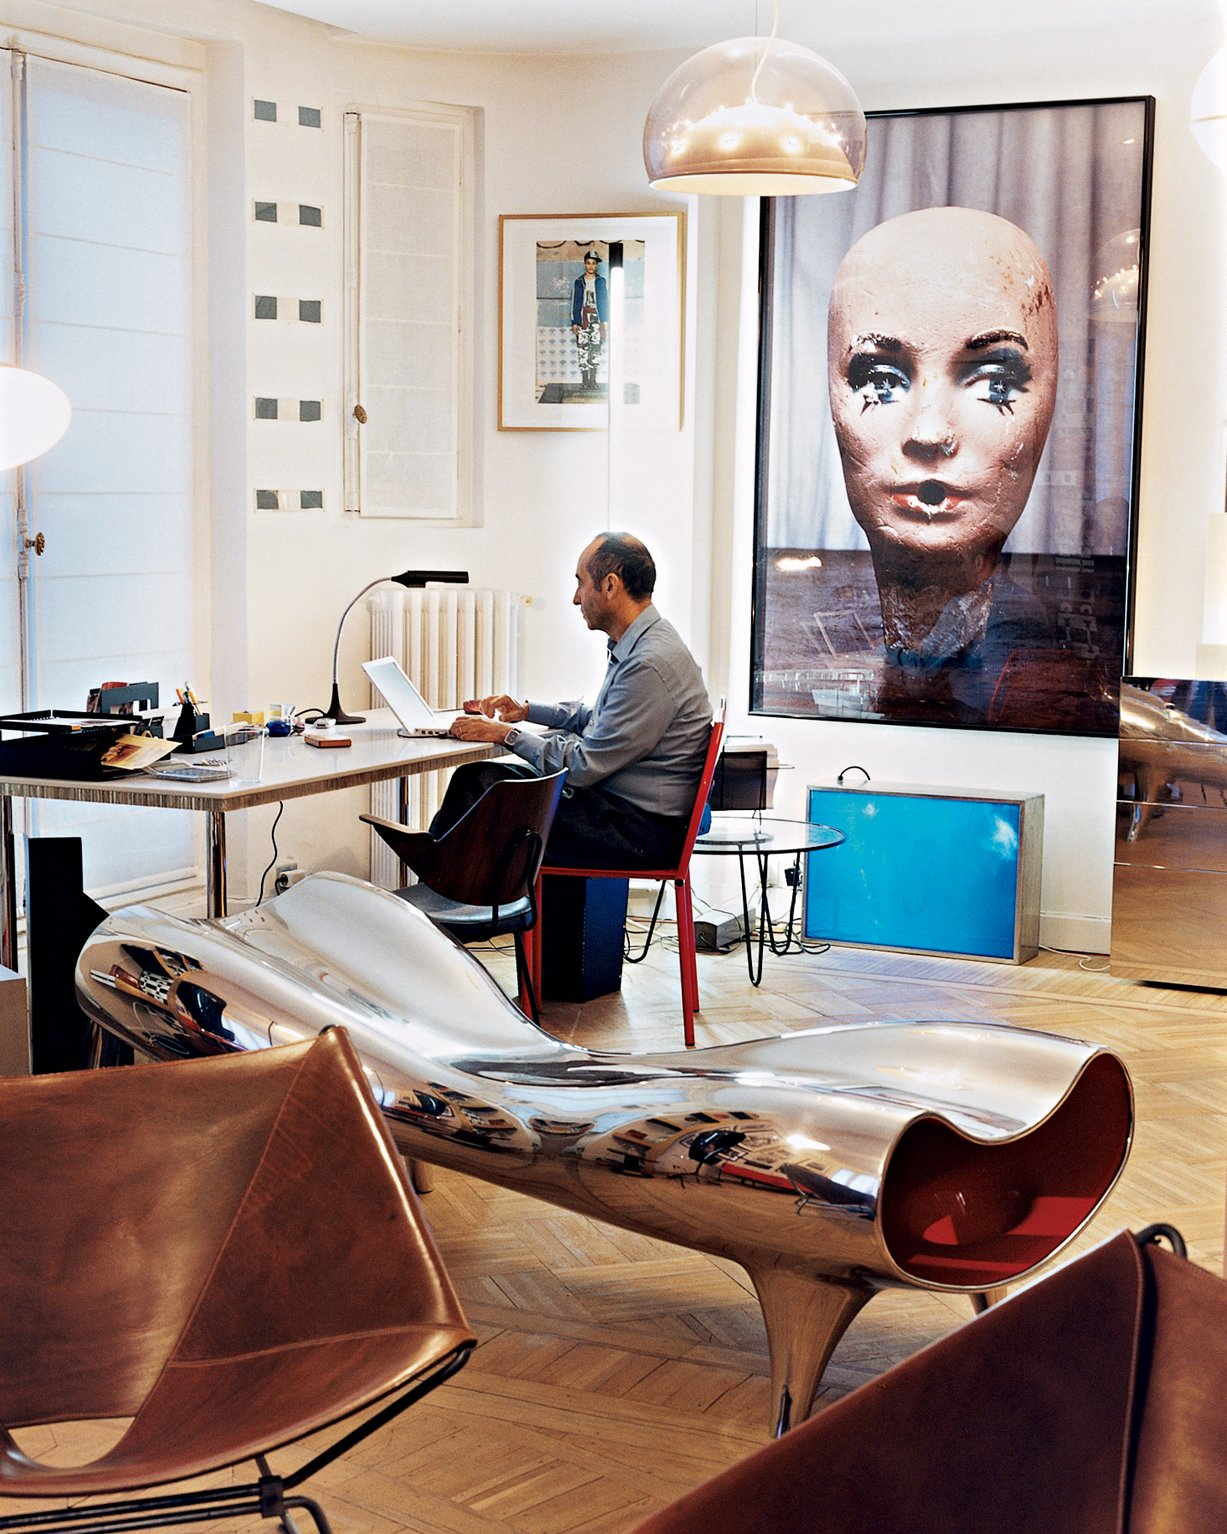 Krzentowski, who works from home for three hours a day, at his desk. A Marc Newson Orgone stretch lounge occupies the foreground, while a large Paul McCarthy photograph looms behind.